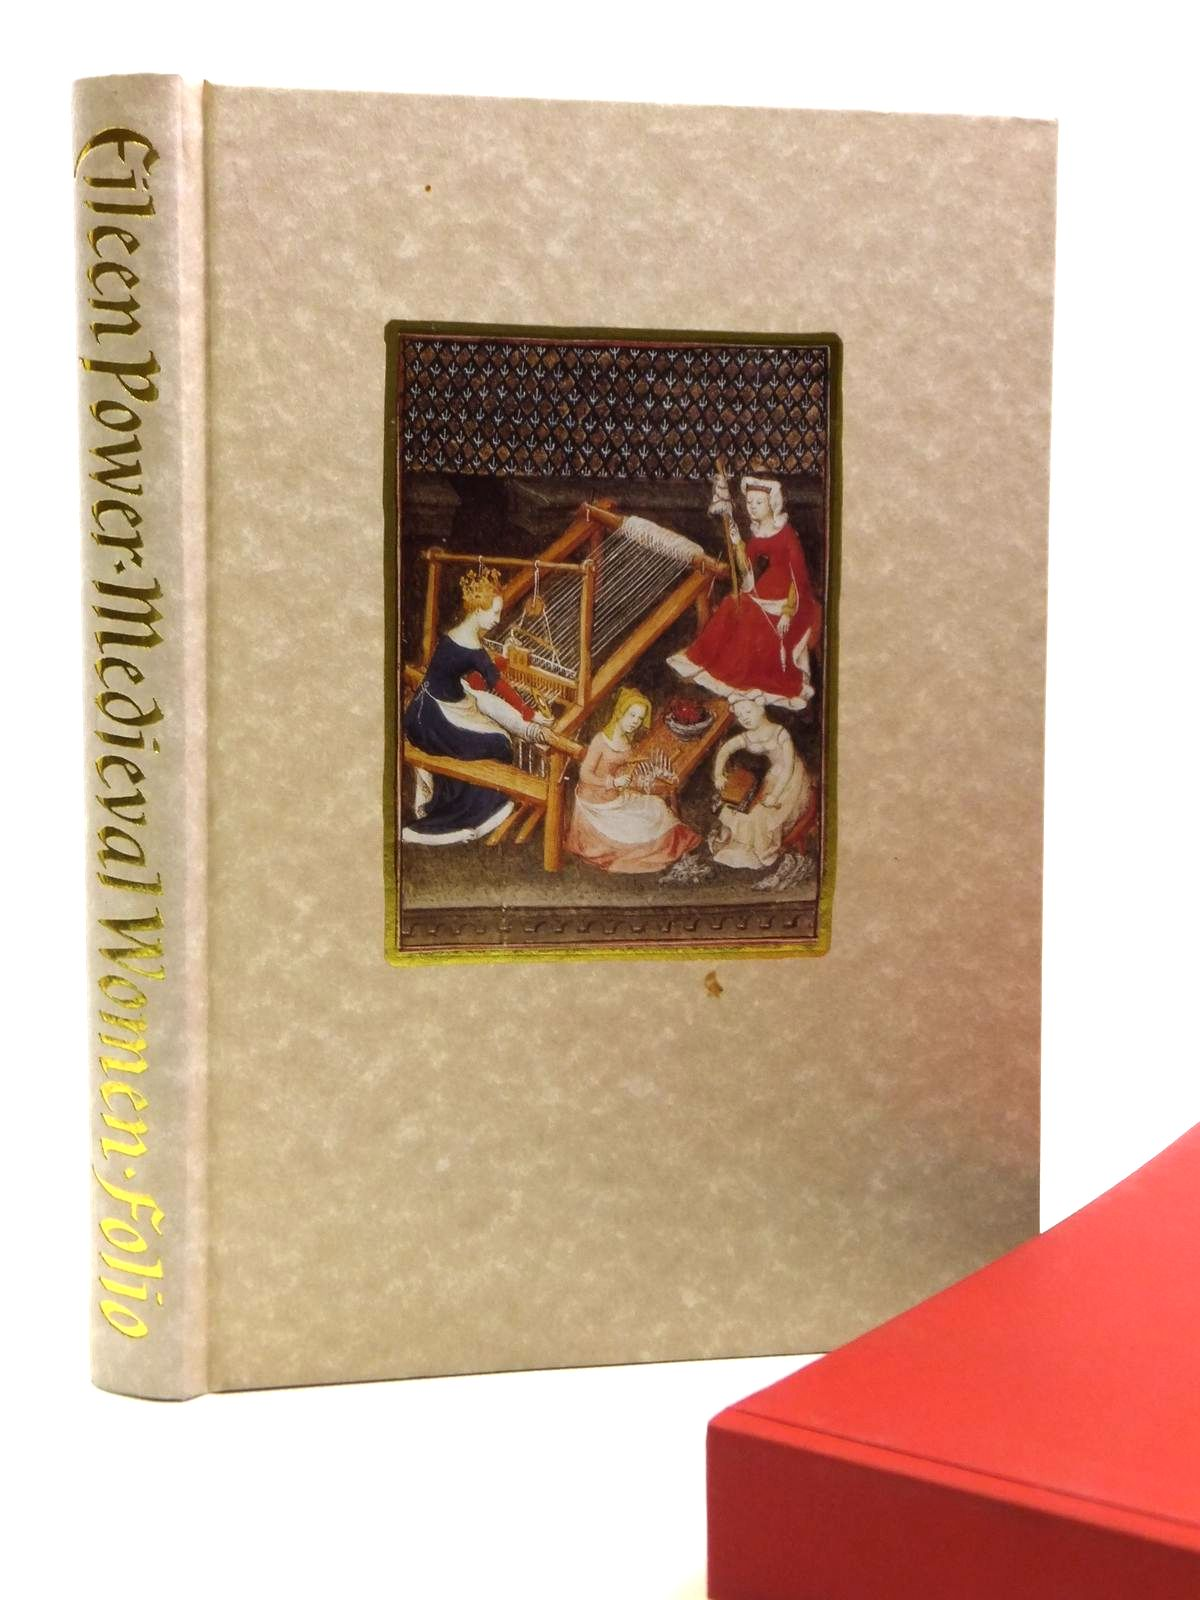 Photo of MEDIEVAL WOMEN written by Power, Eileen<br />Ladurie, Emmanuel Le Roy<br />Berg, Maxine<br />Postan, M.M. published by Folio Society (STOCK CODE: 1608149)  for sale by Stella & Rose's Books